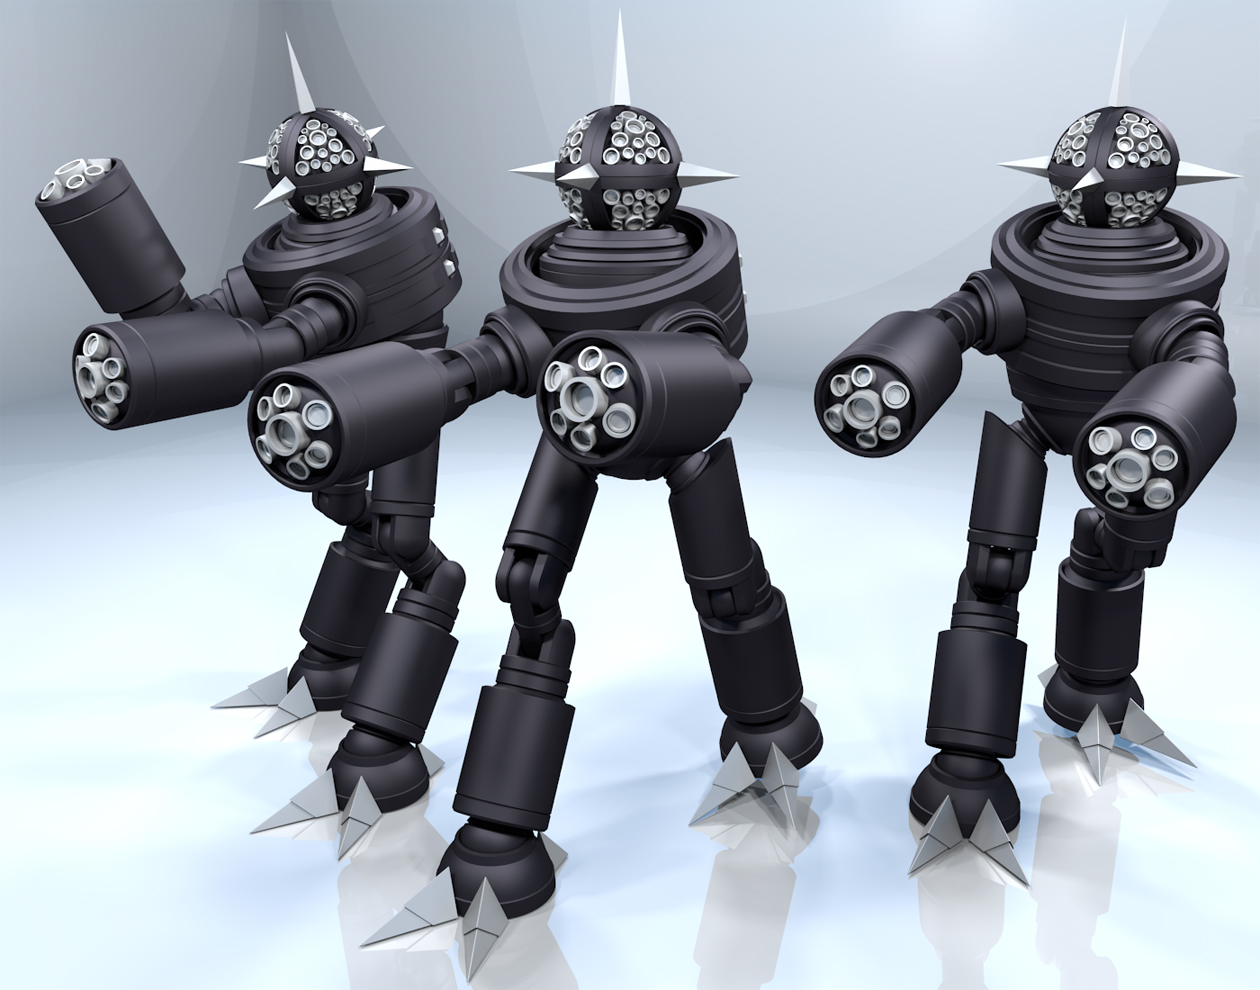 killer robot Elon musk and others seek restrictions on use of autonomous weapons.